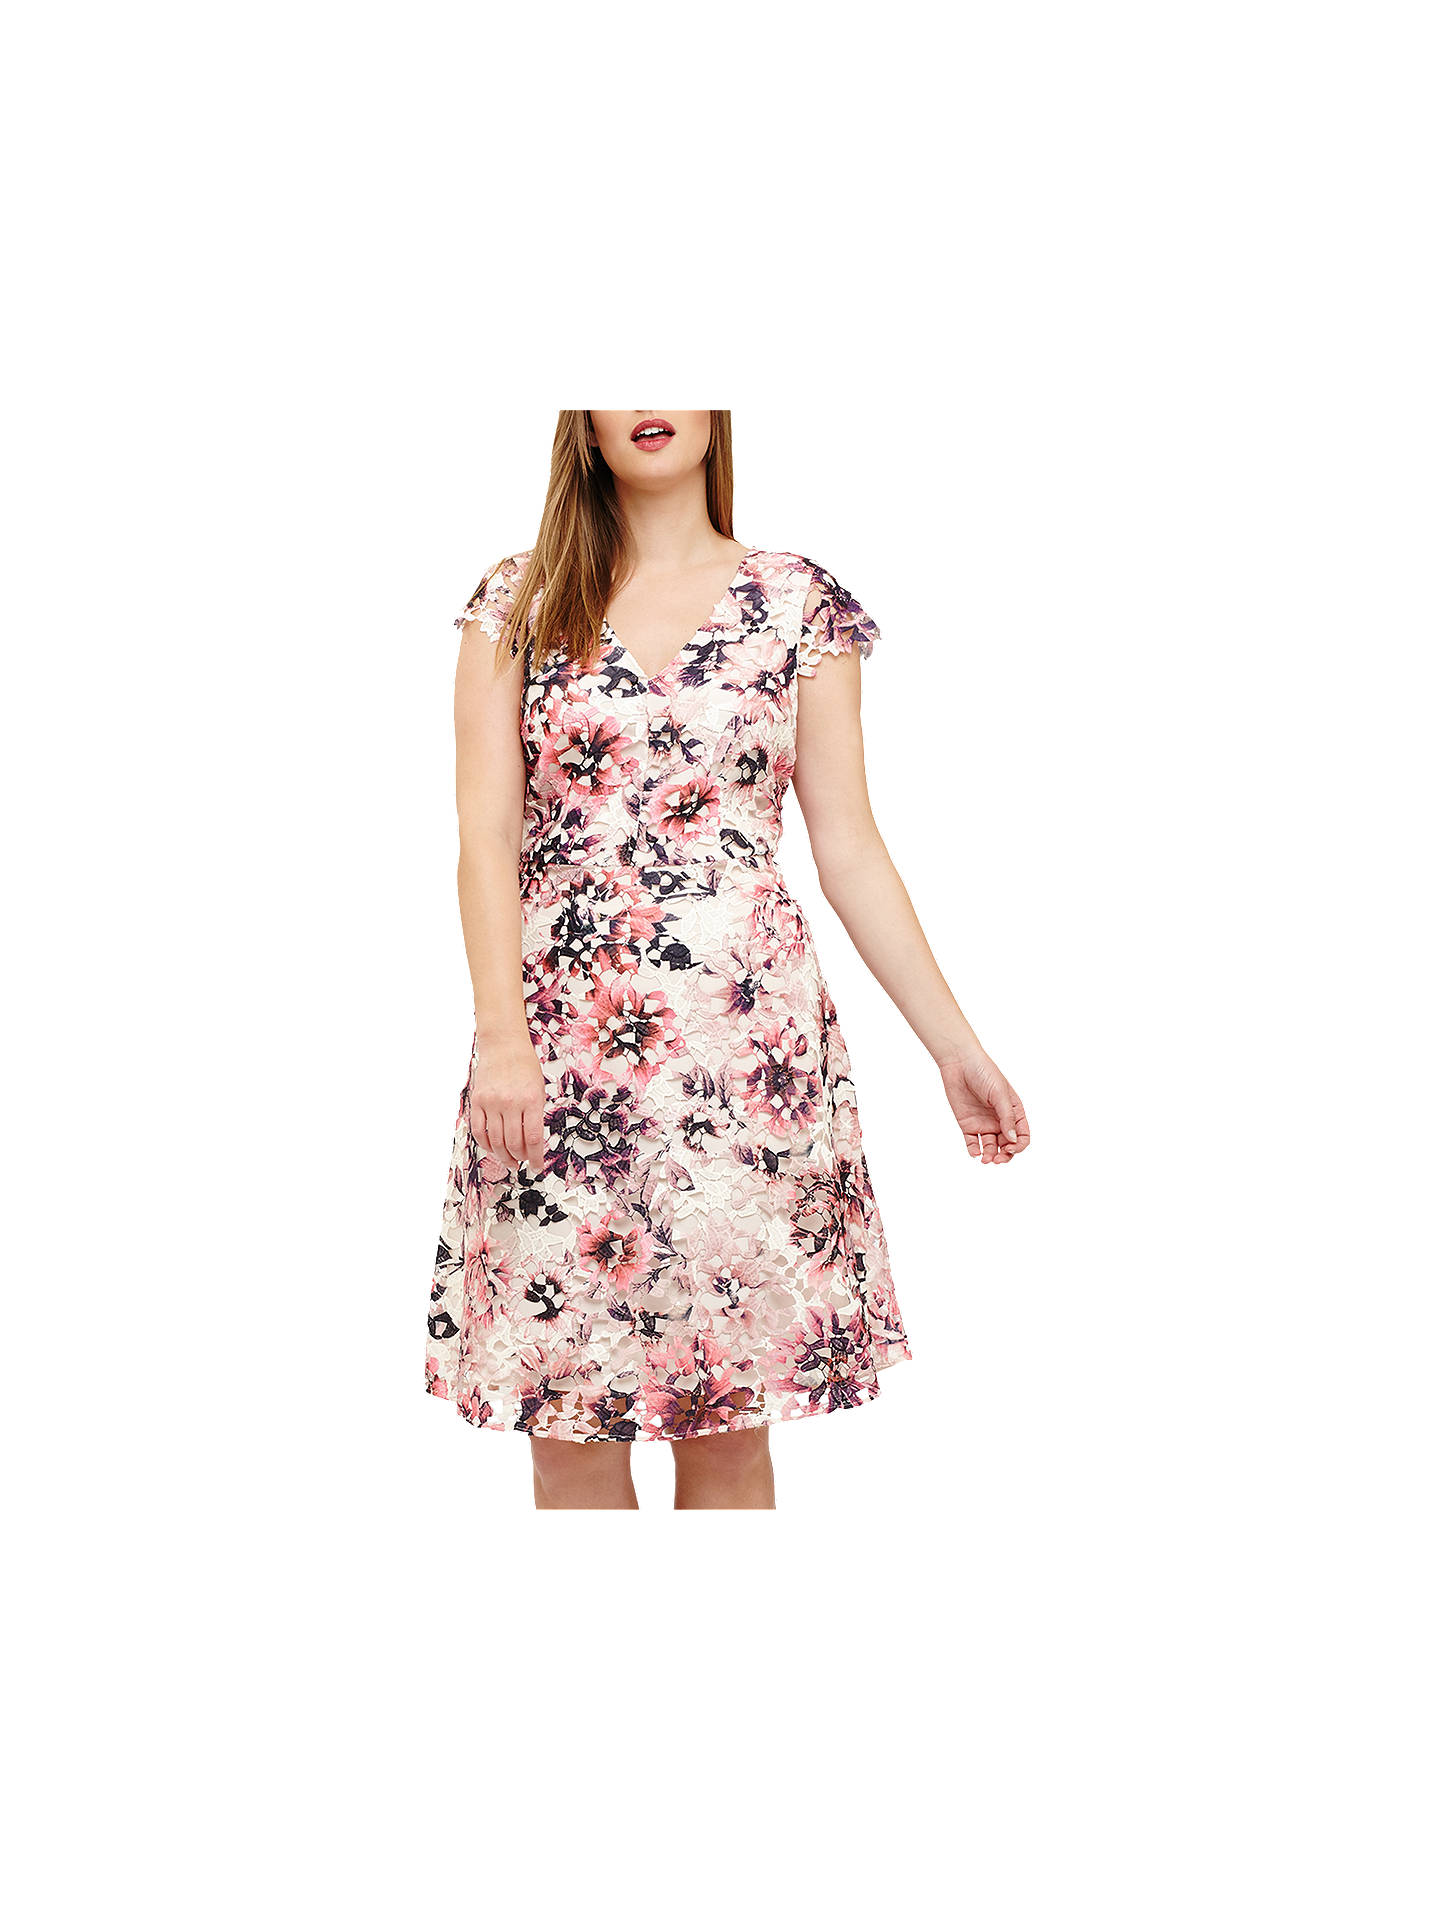 BuyStudio 8 Joselyn Printed Lace Dress, Pink/Multi, 12 Online at johnlewis.com